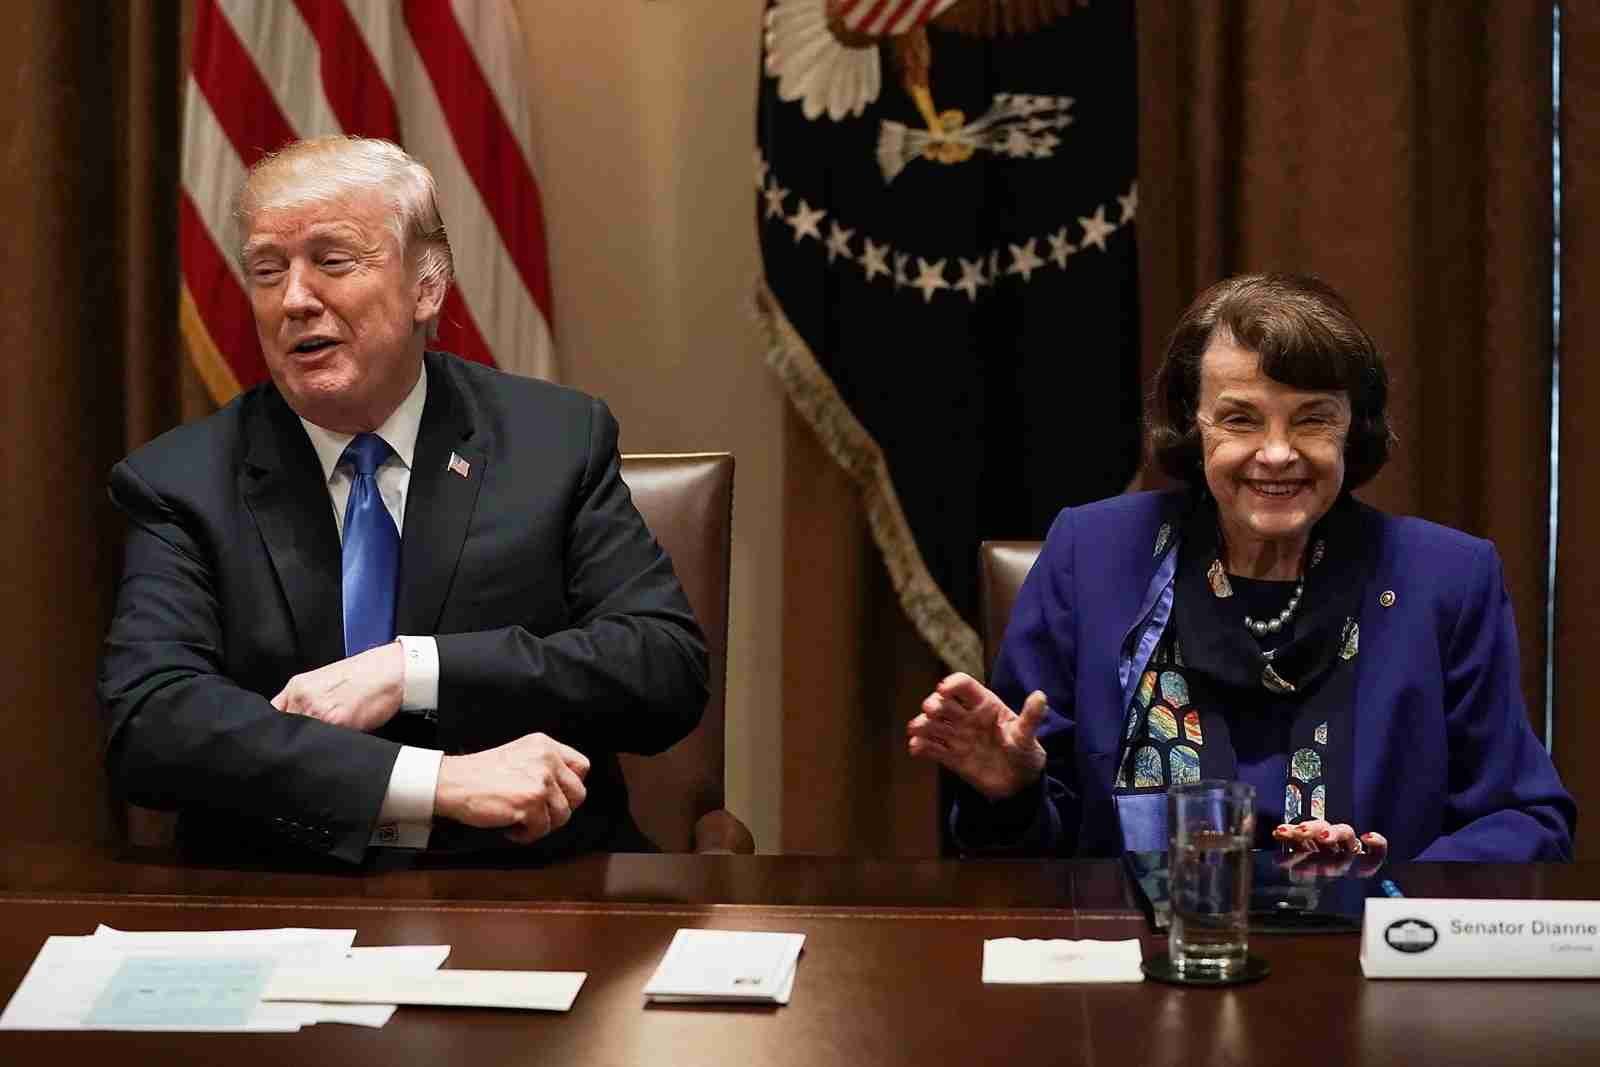 U.S. President Donald Trump (L) and Sen. Dianne Feinstein (D-CA) (R). (Photo by Alex Wong/Getty Images)